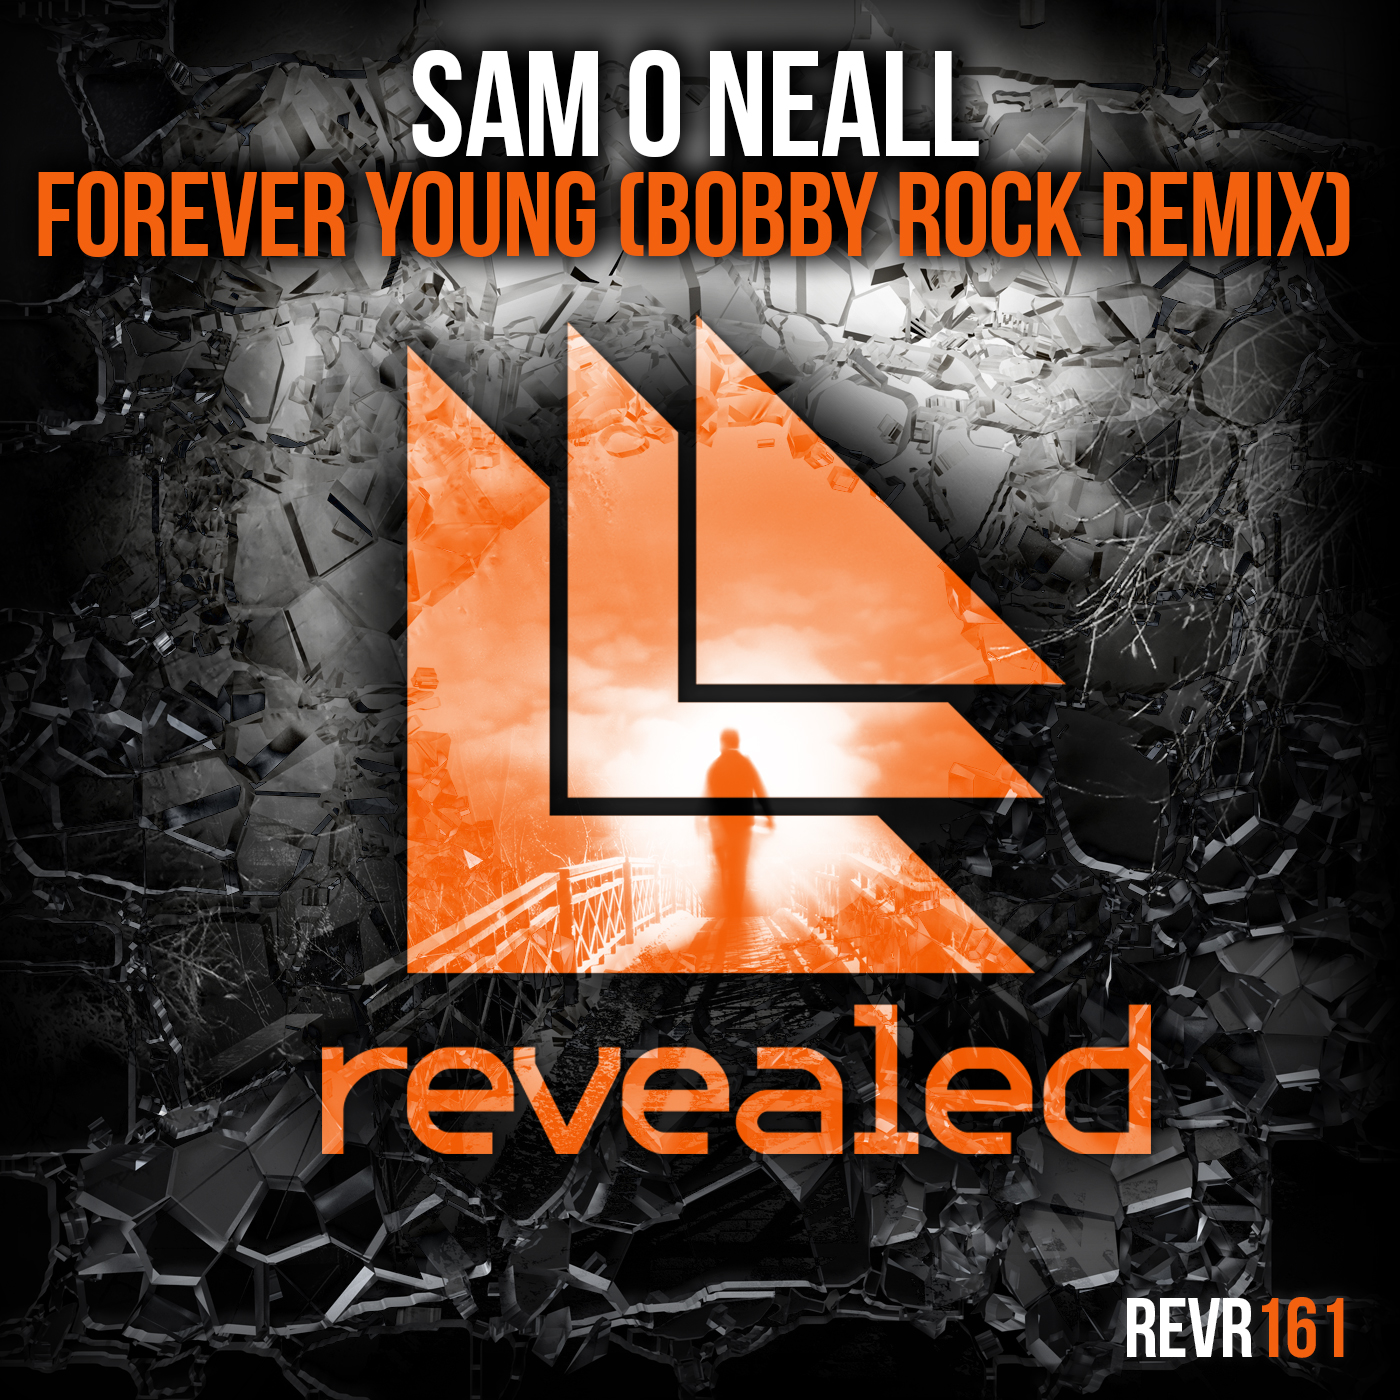 Forever Young Bobby Rock Remix Sam